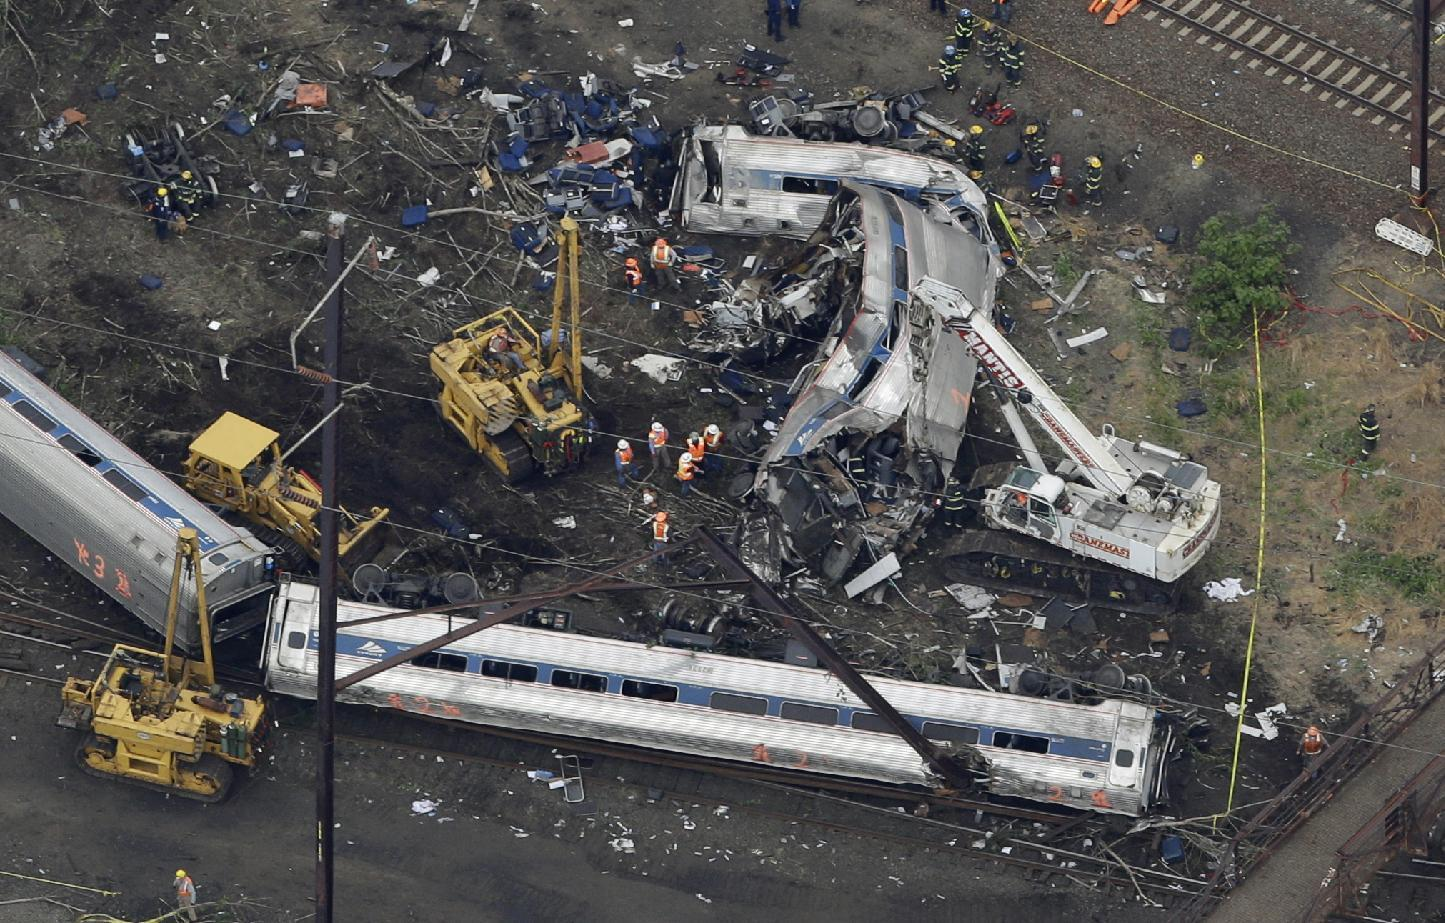 Lawmakers likely to question Amtrak on safety technology